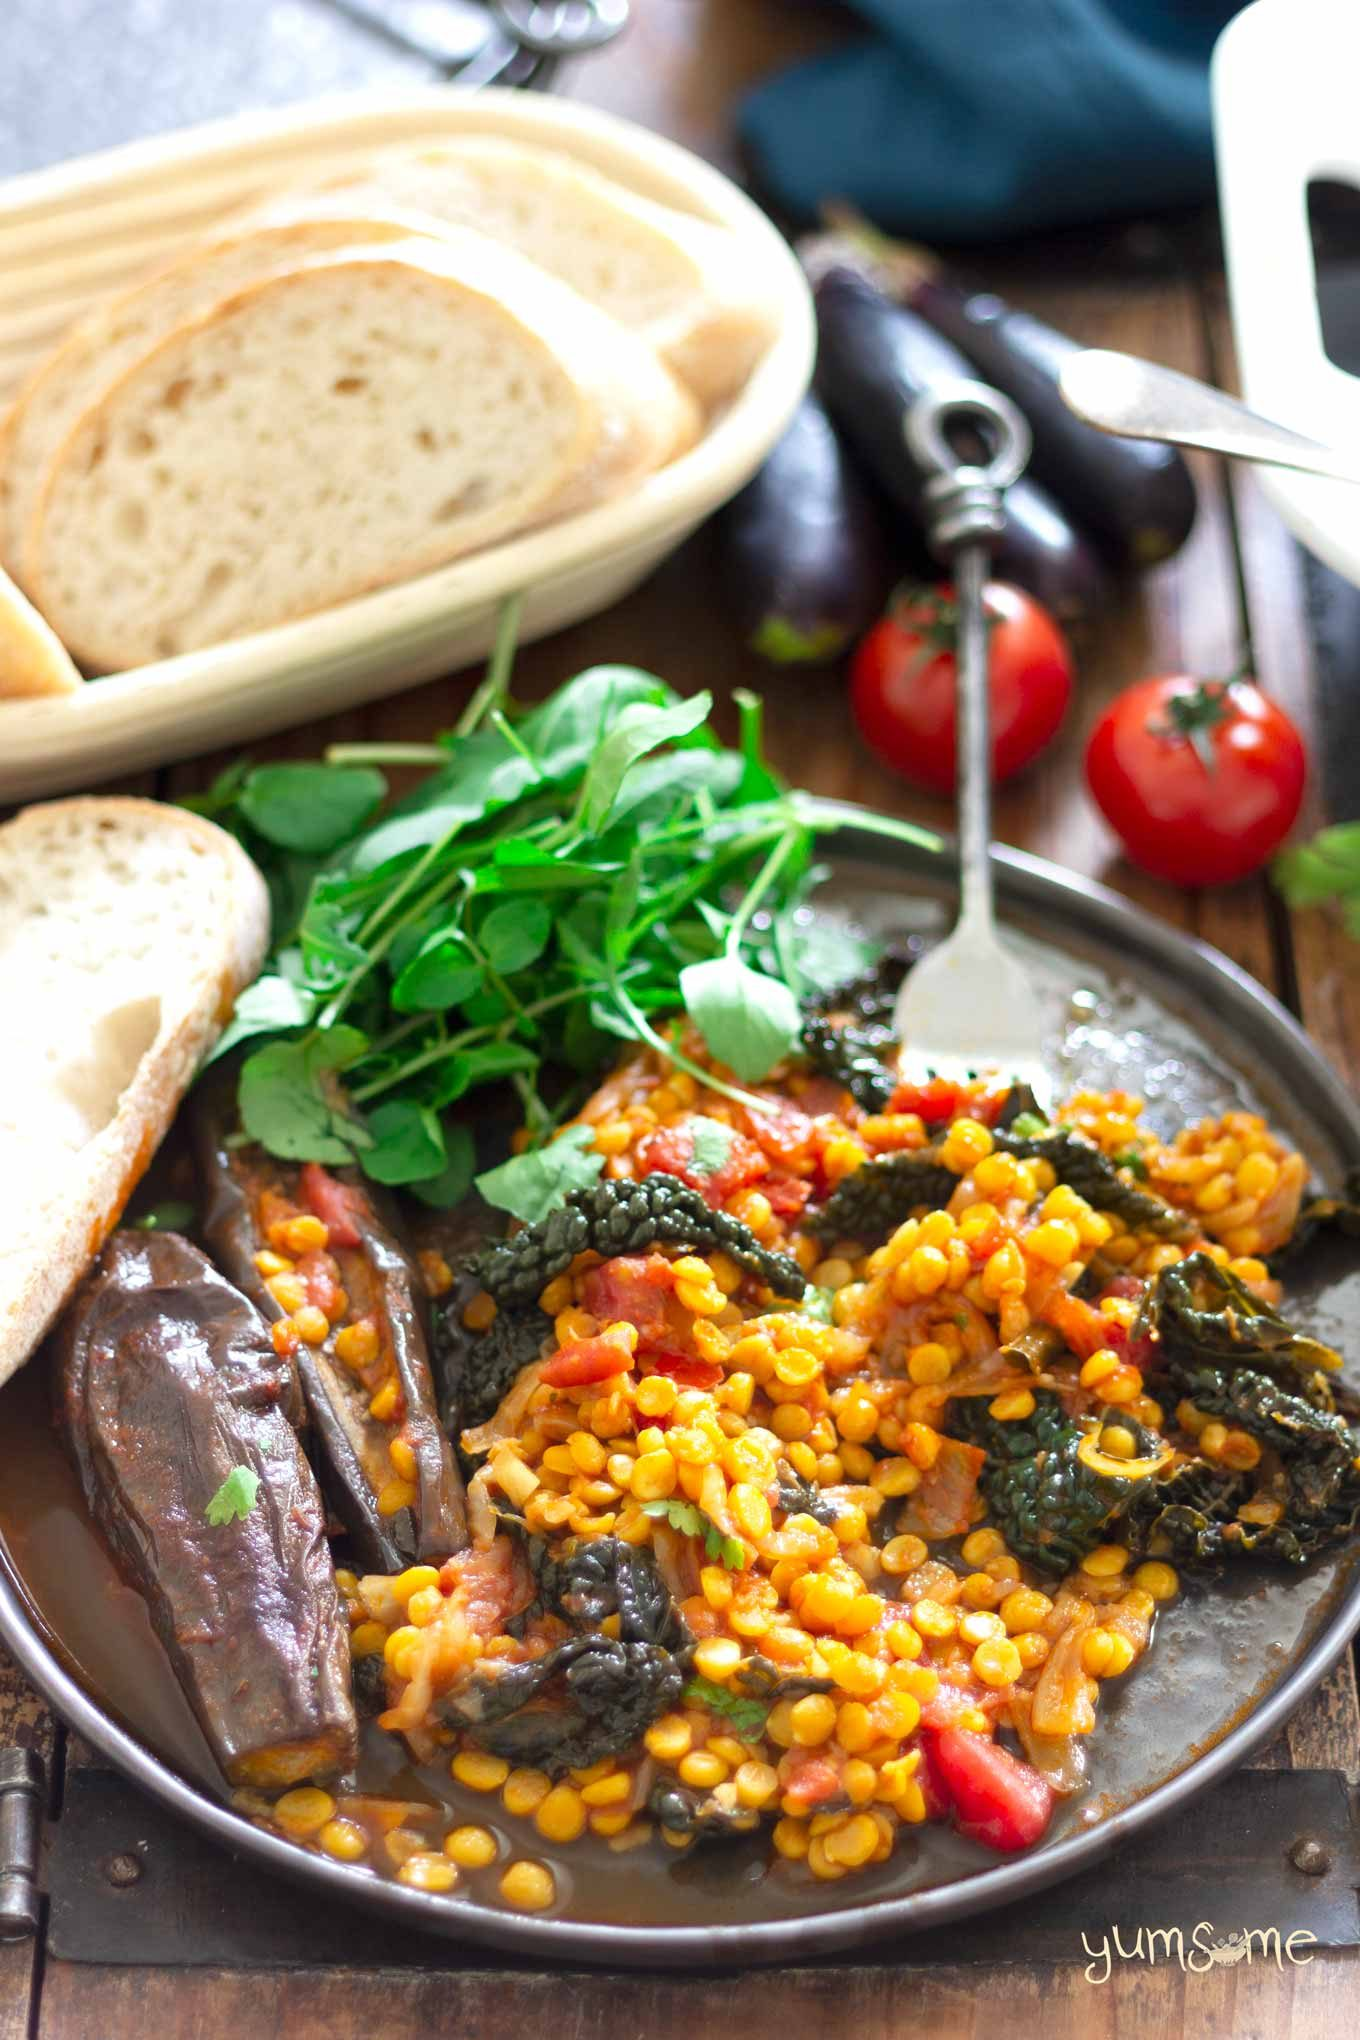 A serving of vegan spicy dal, aubergine, and kale casserole on a plate, with some bread and green salad.